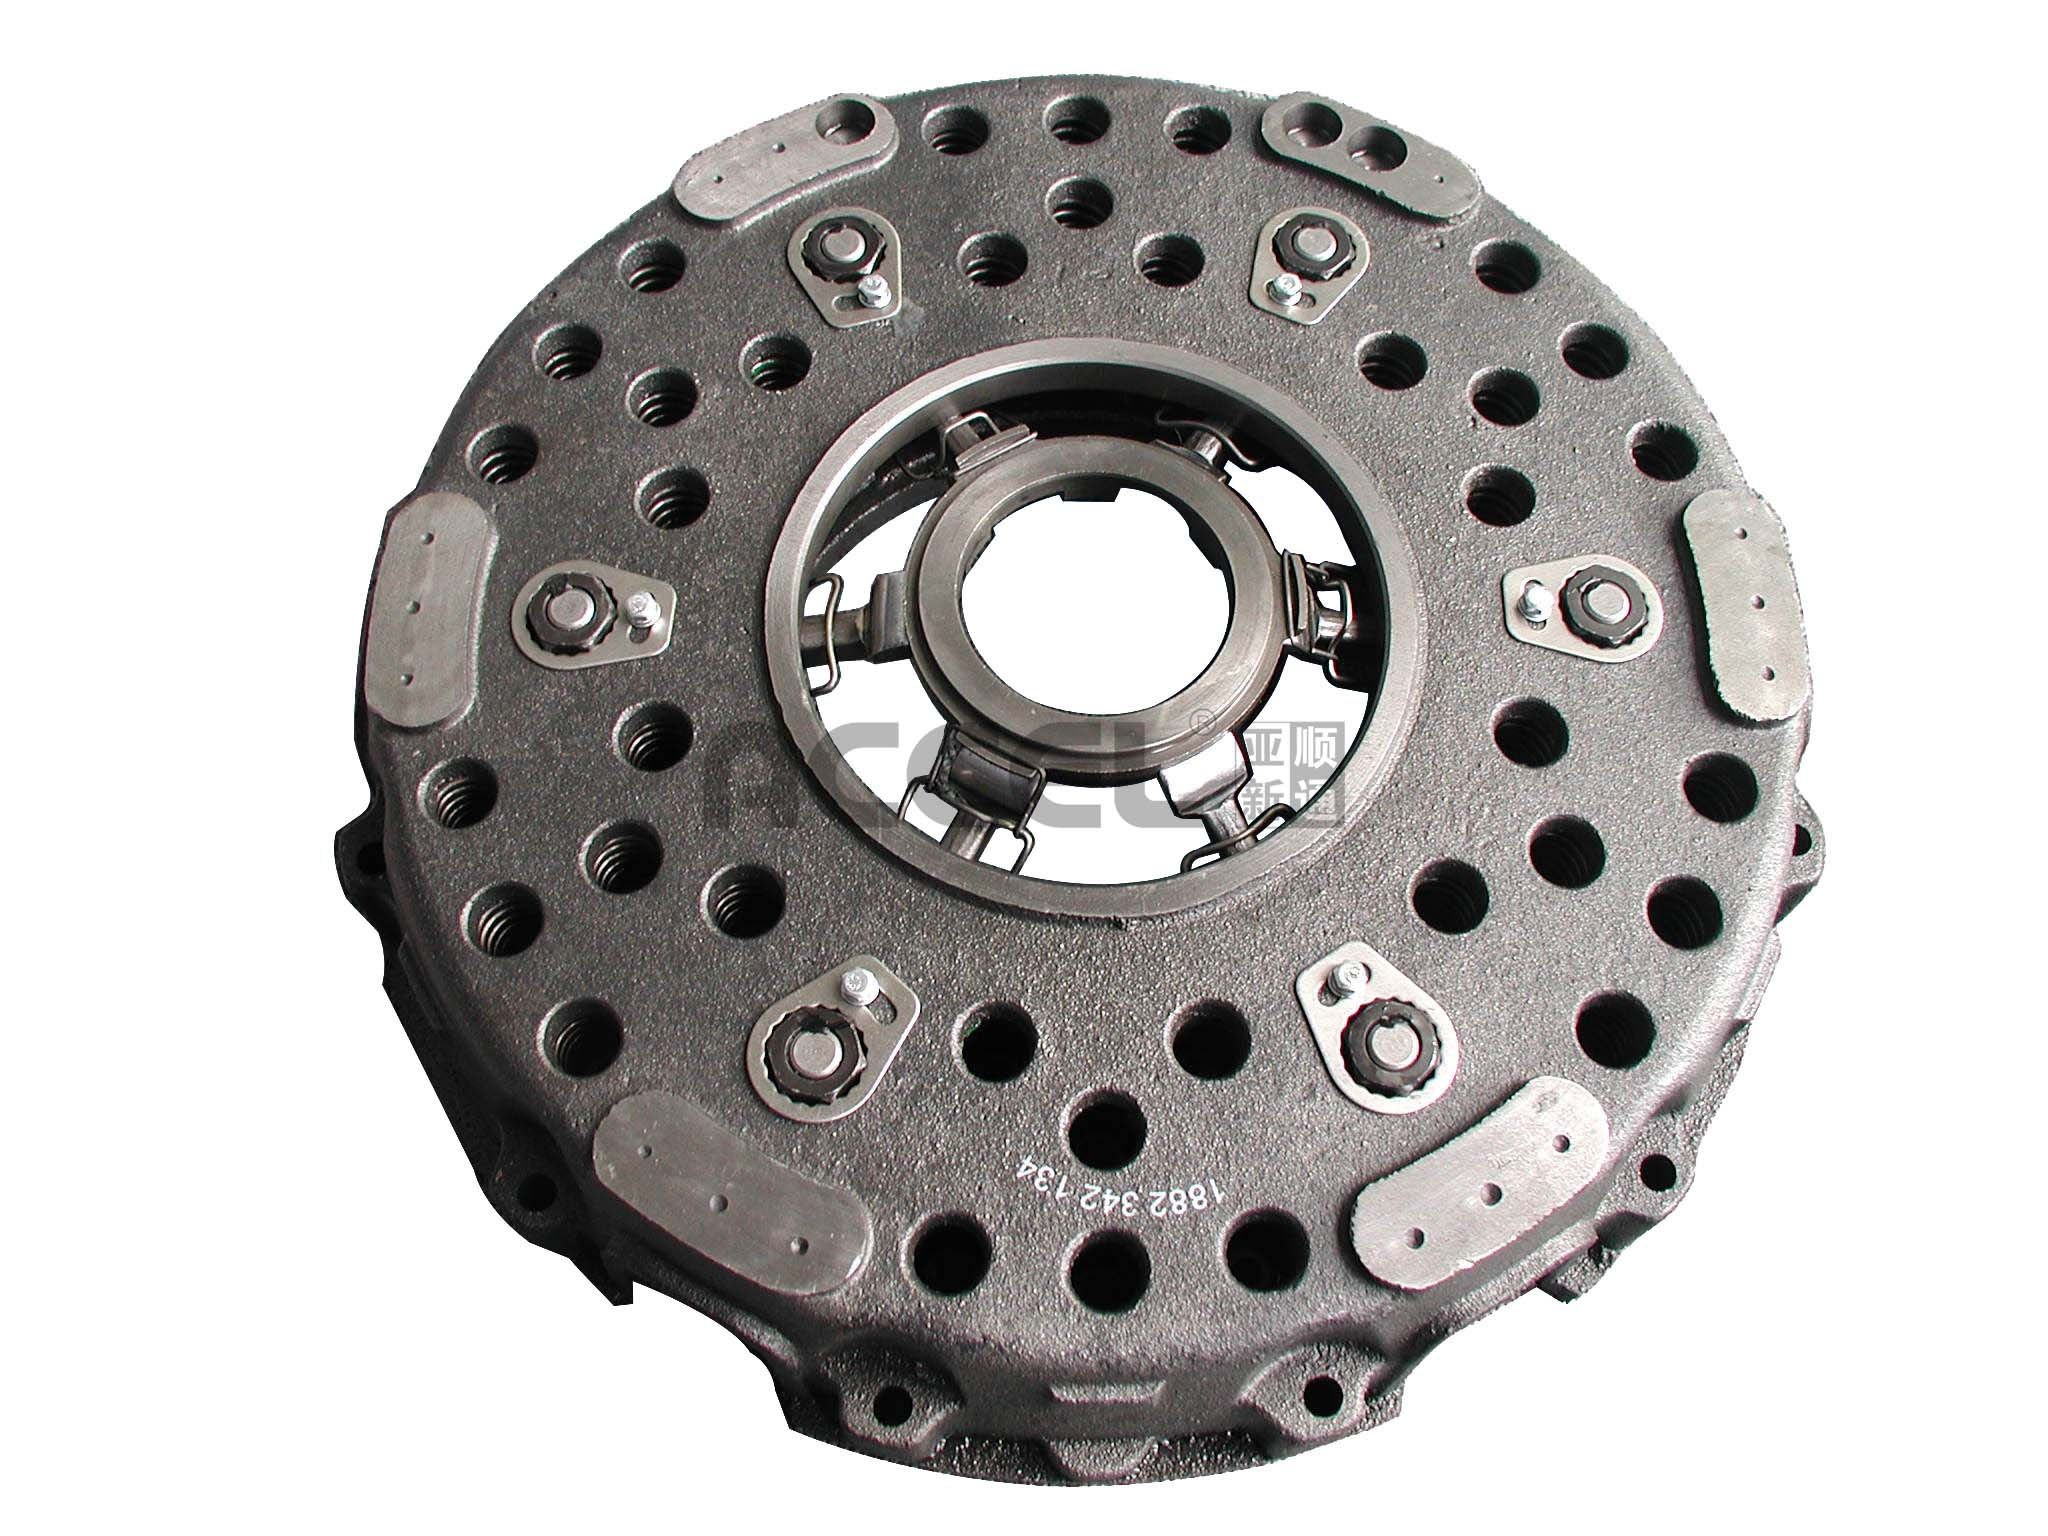 Clutch Cover/OE:1882 342 134/420*215*450/CBZ-005/MERCEDES BENZ/LY189/3600663/81.30305.0124/003 250 9004